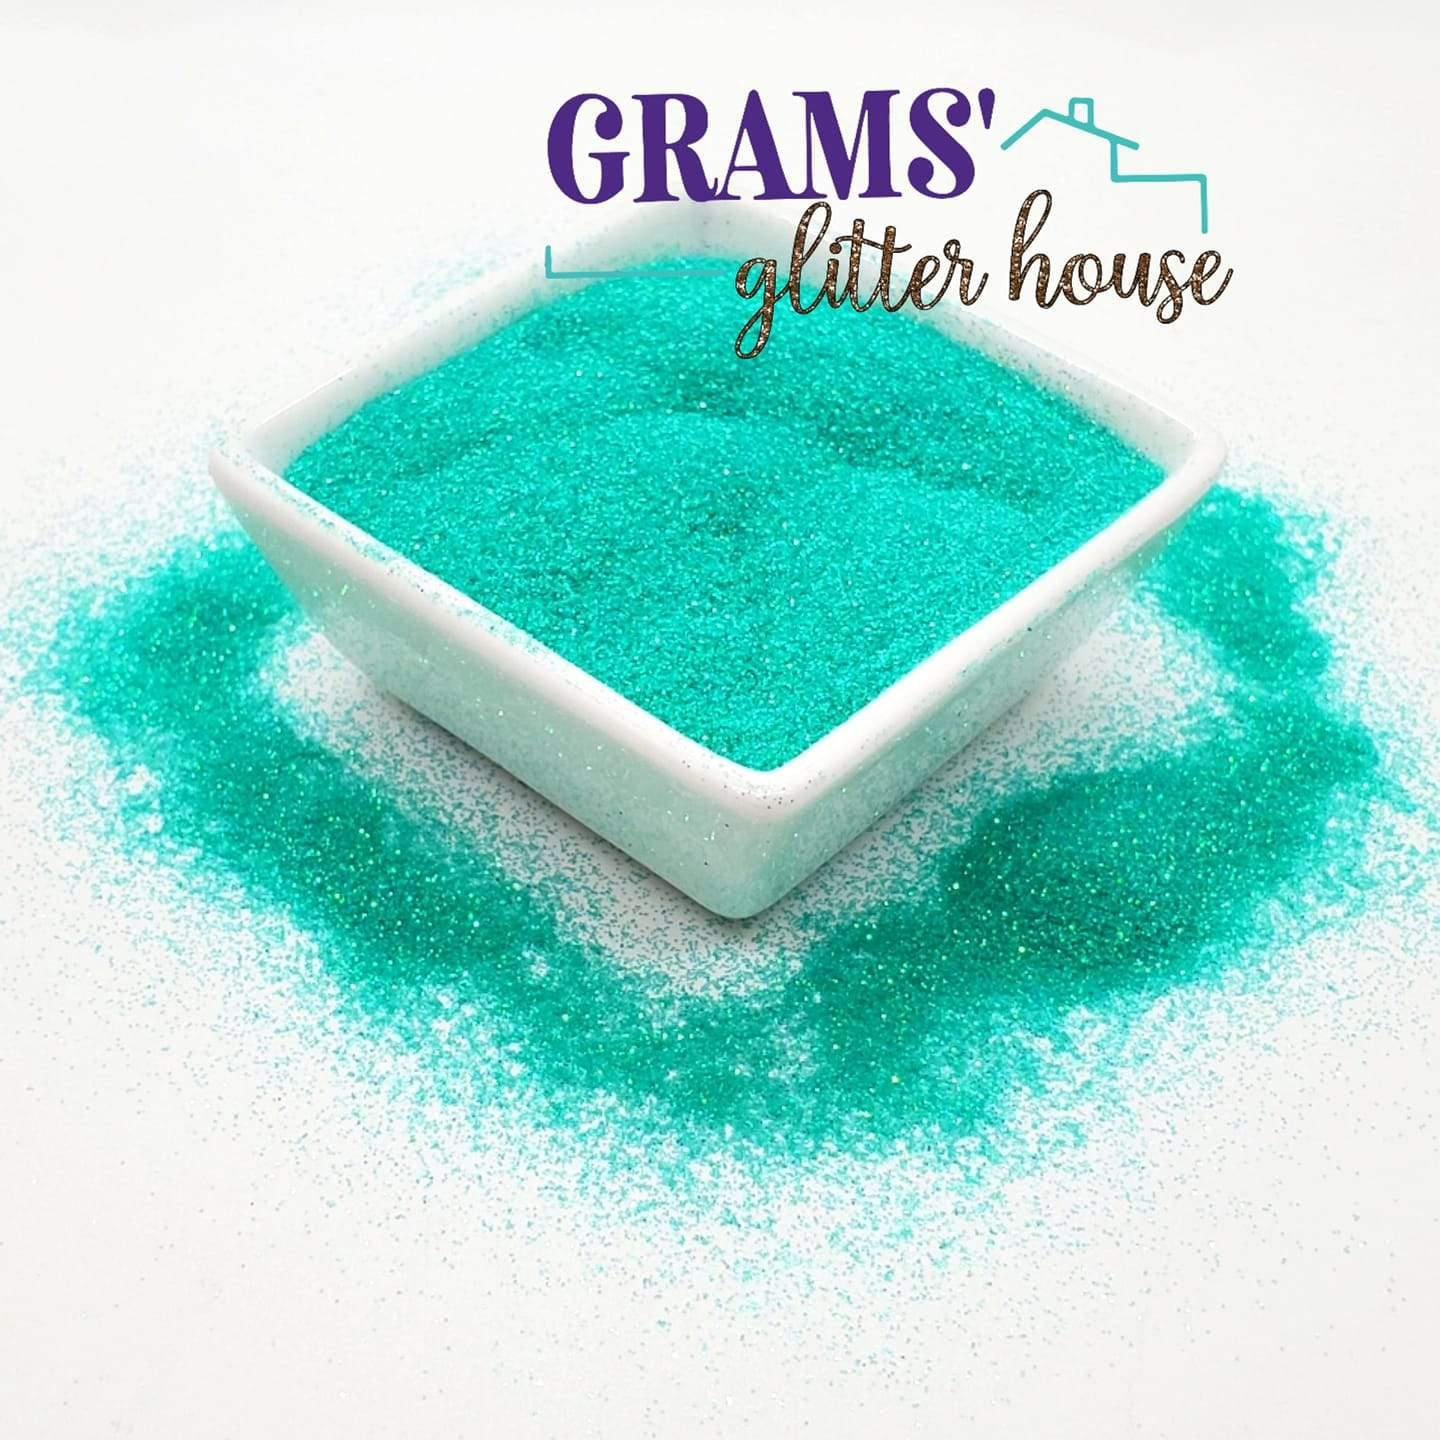 Egyptian Green - Grams' Glitter House